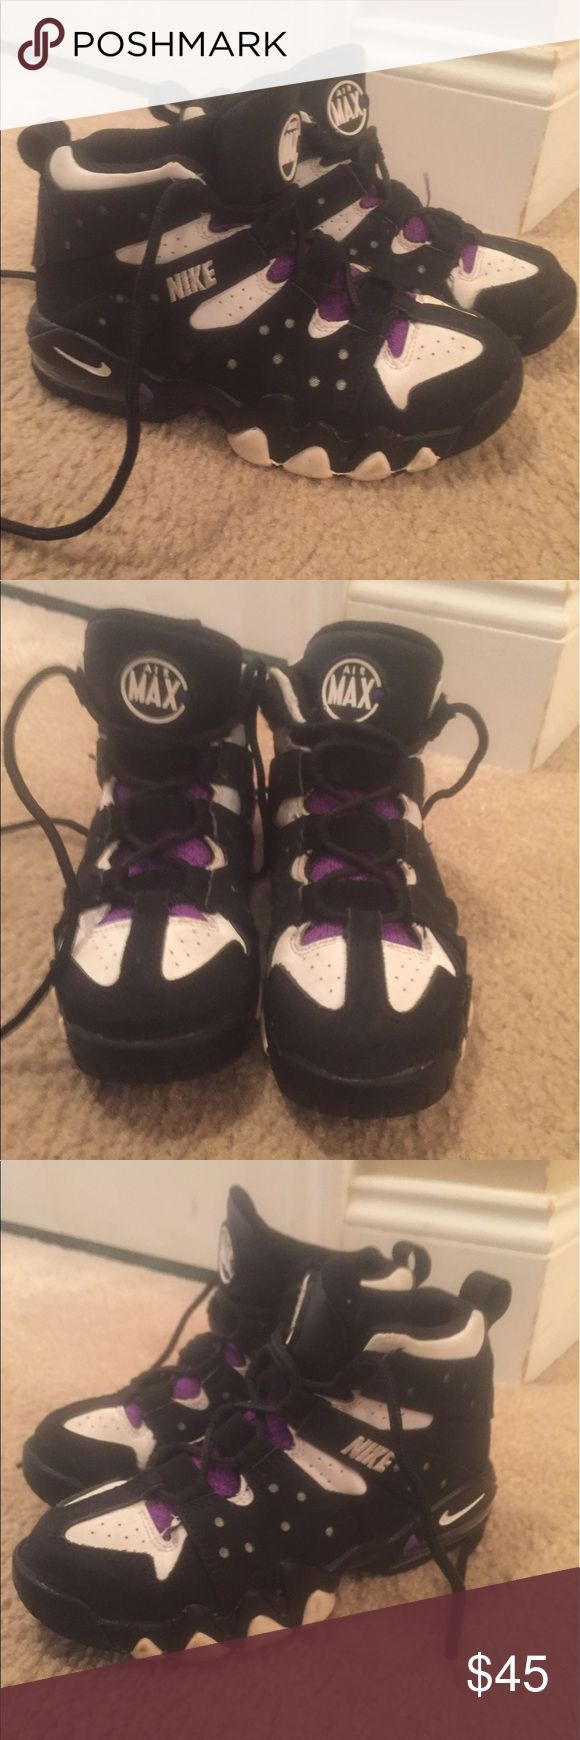 Nike Air Max CB 94 Barkley mid top black SZ 1Y In good condition Nike Shoes Sneakers